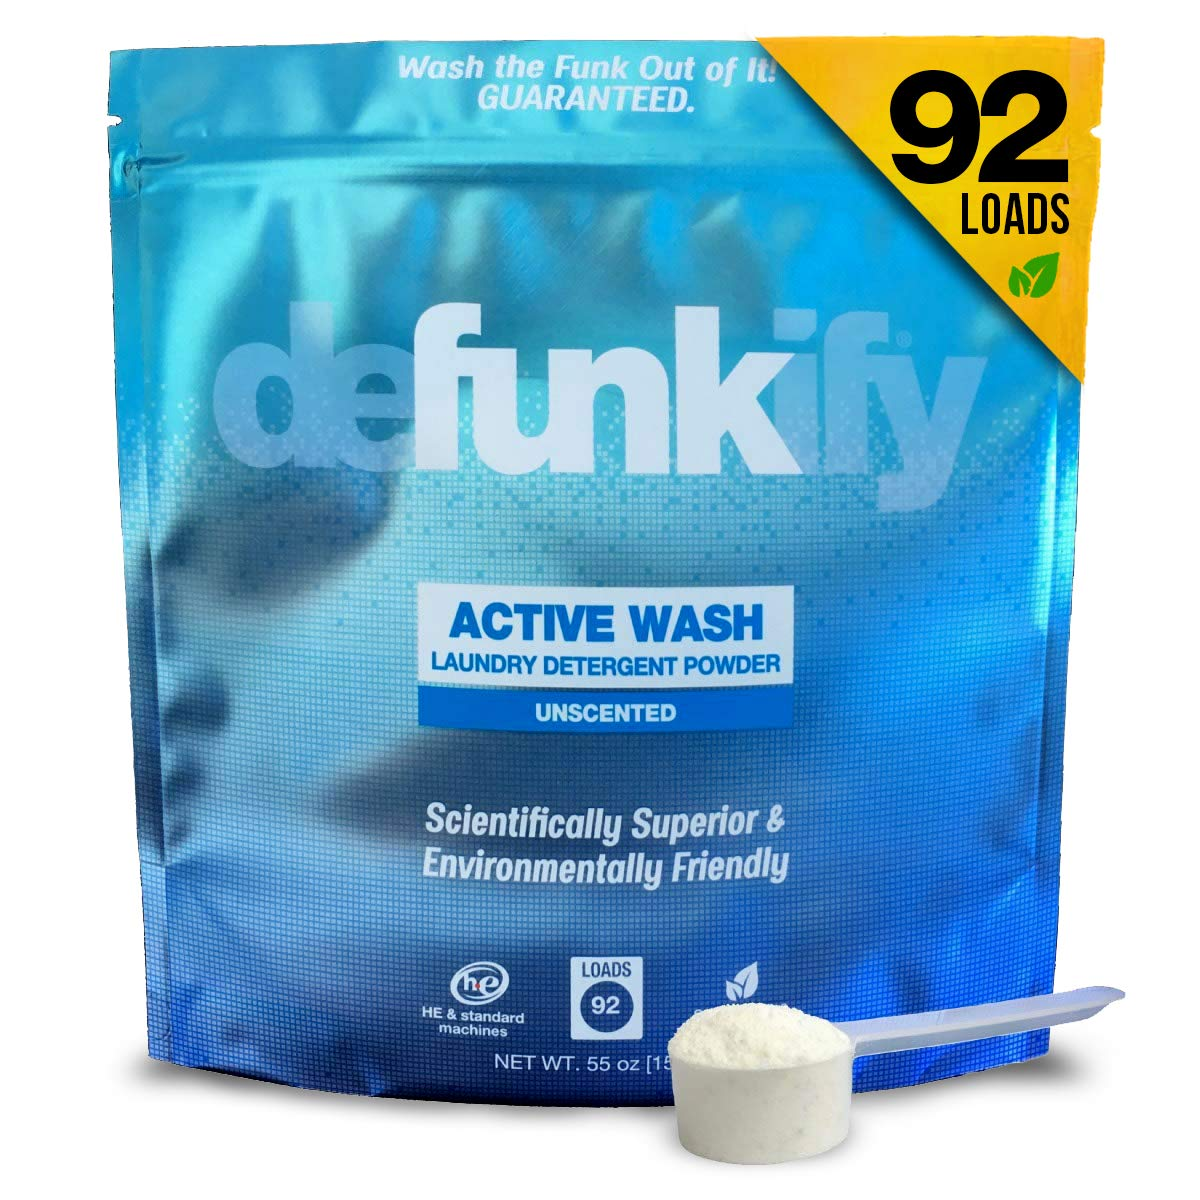 Defunkify Active Wear Powder Laundry Detergent, All Natural, Plant-Based, Enzyme Cleaner, Odor and Stain Remover, Free and Clear, Unscented 55 oz (92 Loads)